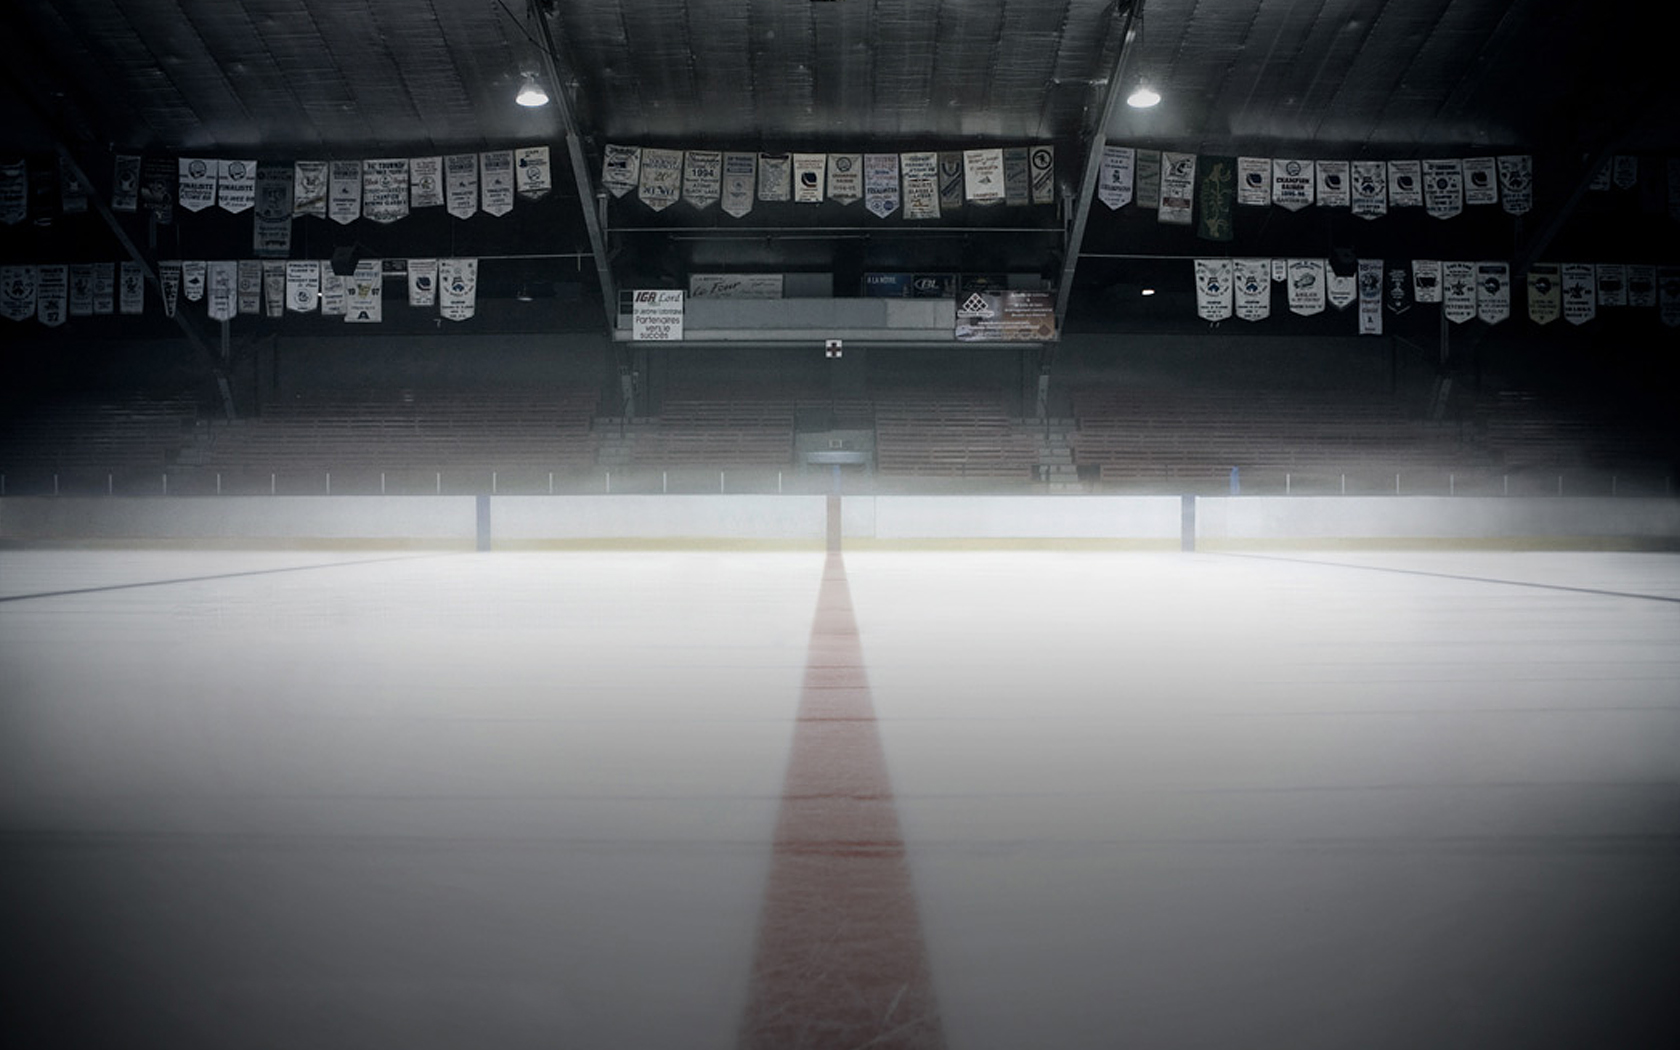 Ice rink clipart wallpaper black and white library hockey-rink-wallpaper | Espanola Express Jr."|1680|1050|?|en|2|a1ab961d67d3f60cf1a5771edcbf72da|False|UNLIKELY|0.3004089593887329